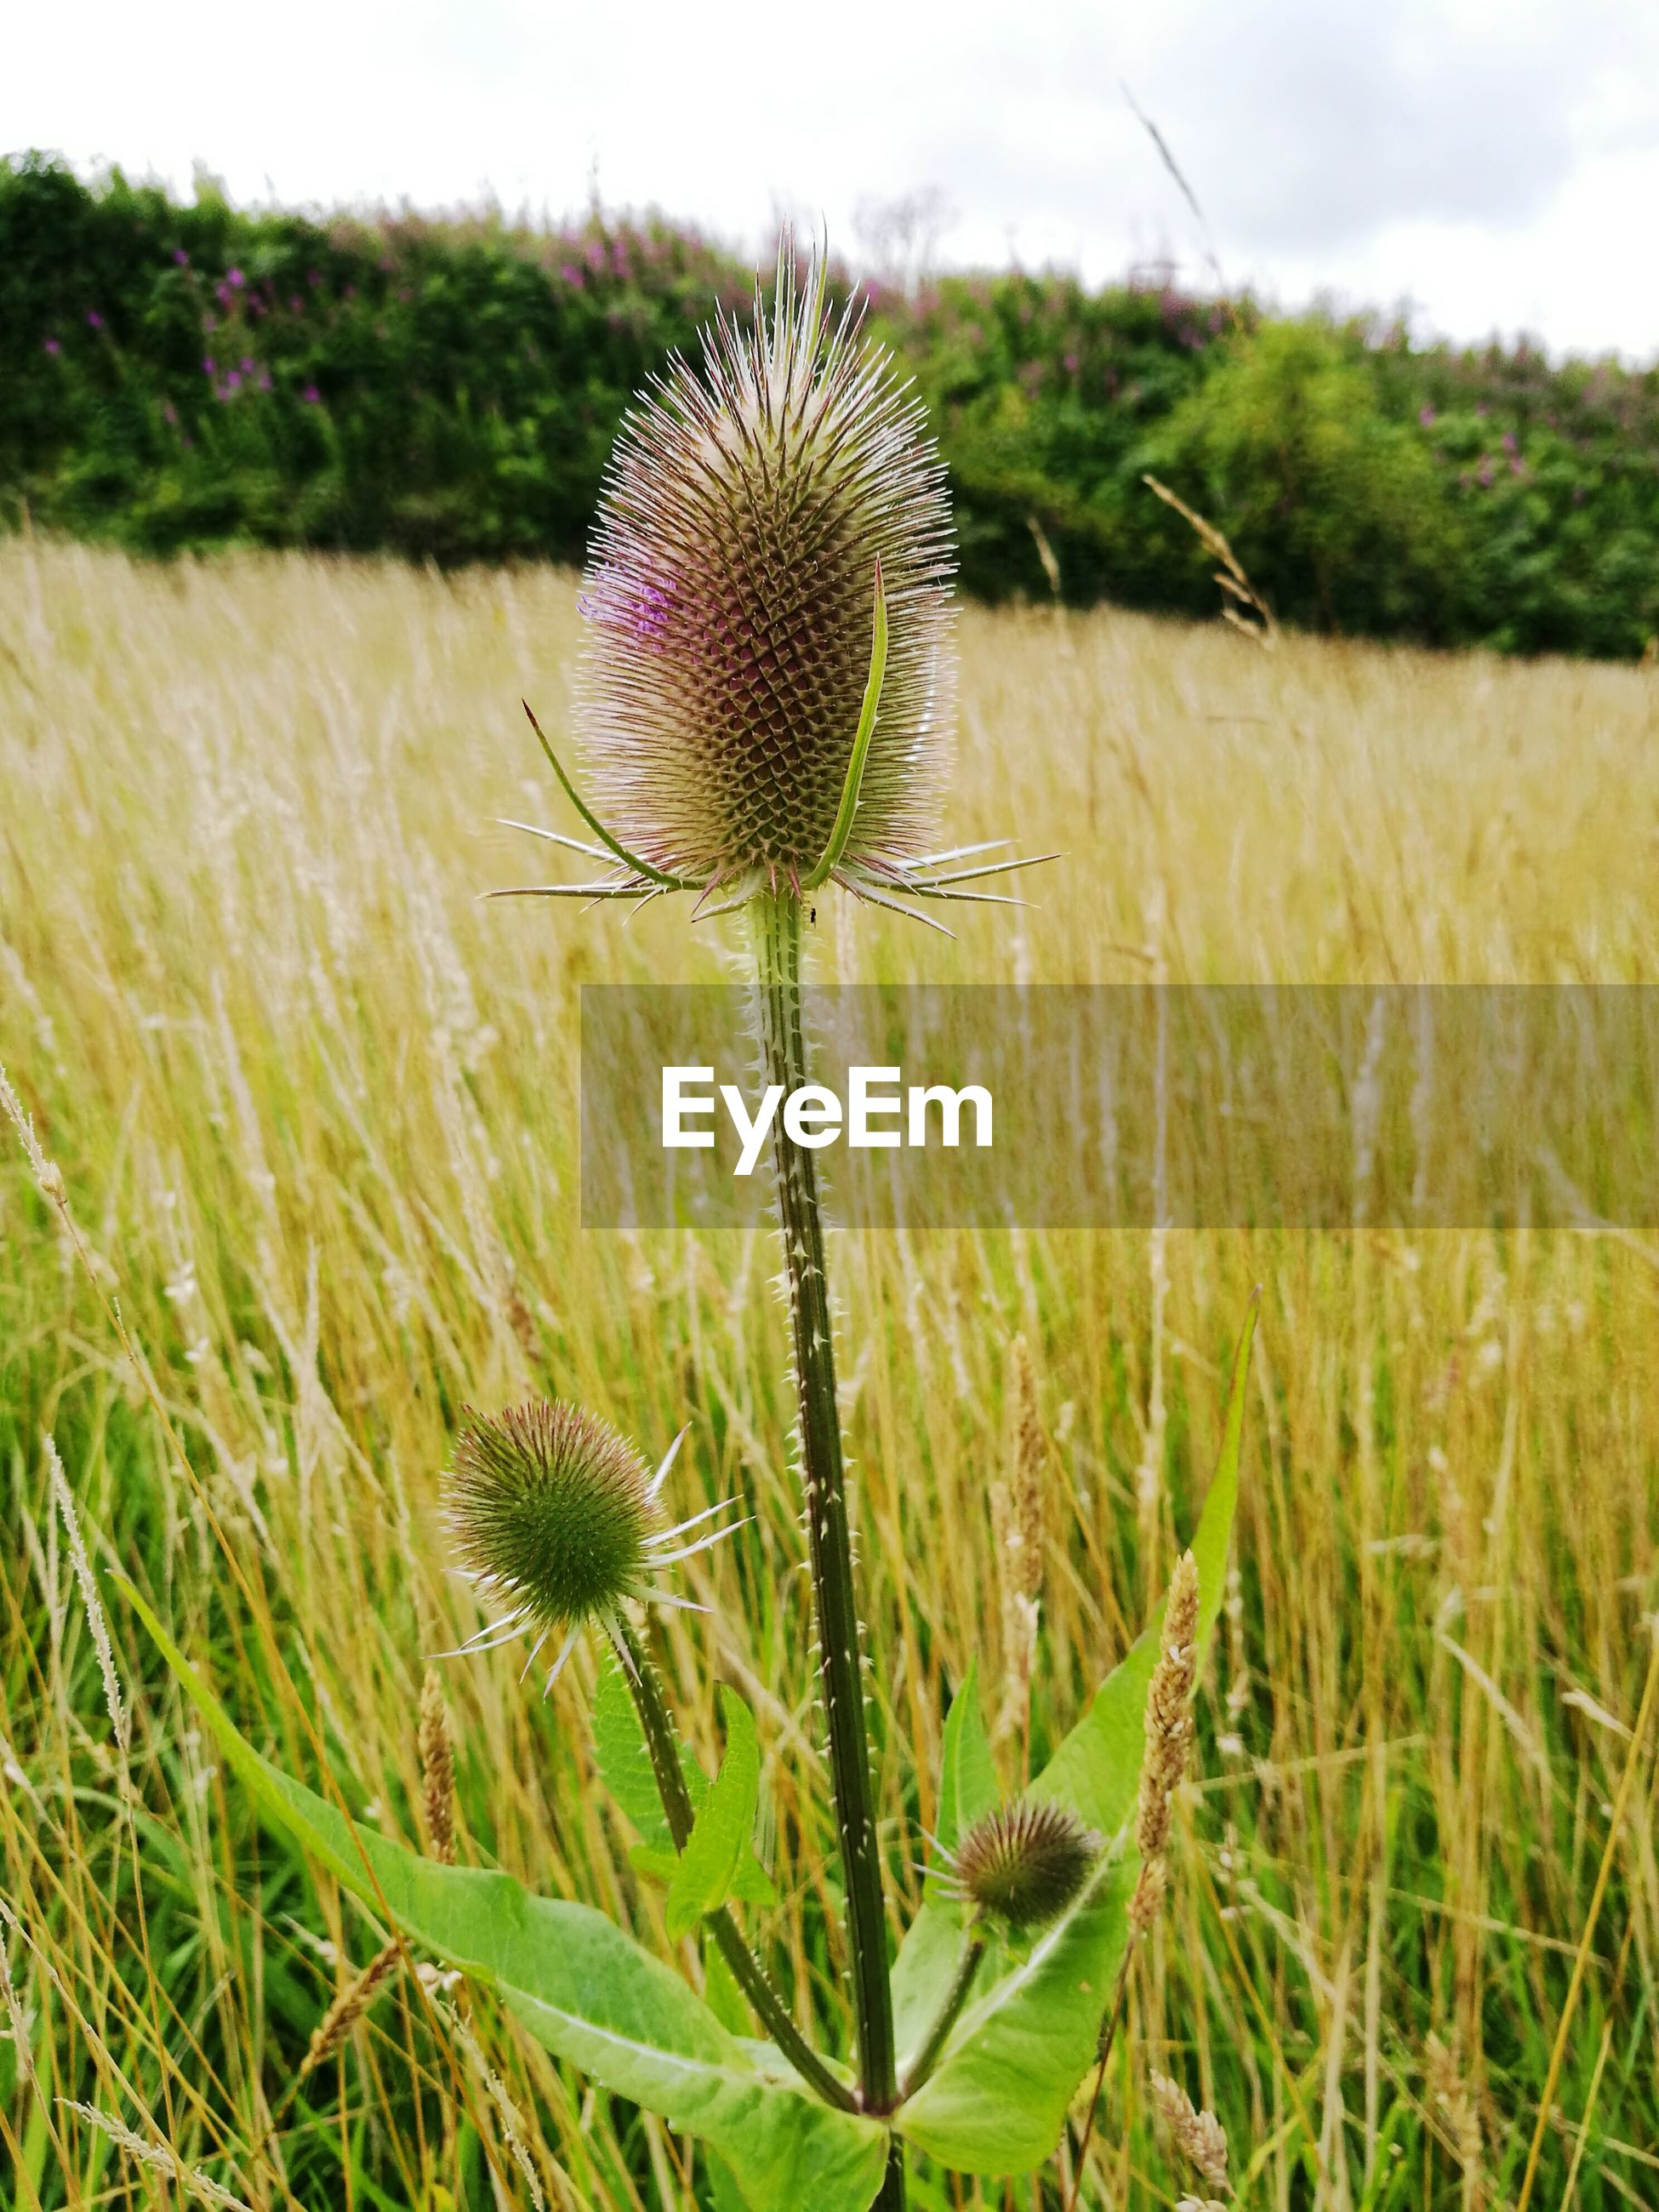 CLOSE-UP OF THISTLE GROWING ON FIELD